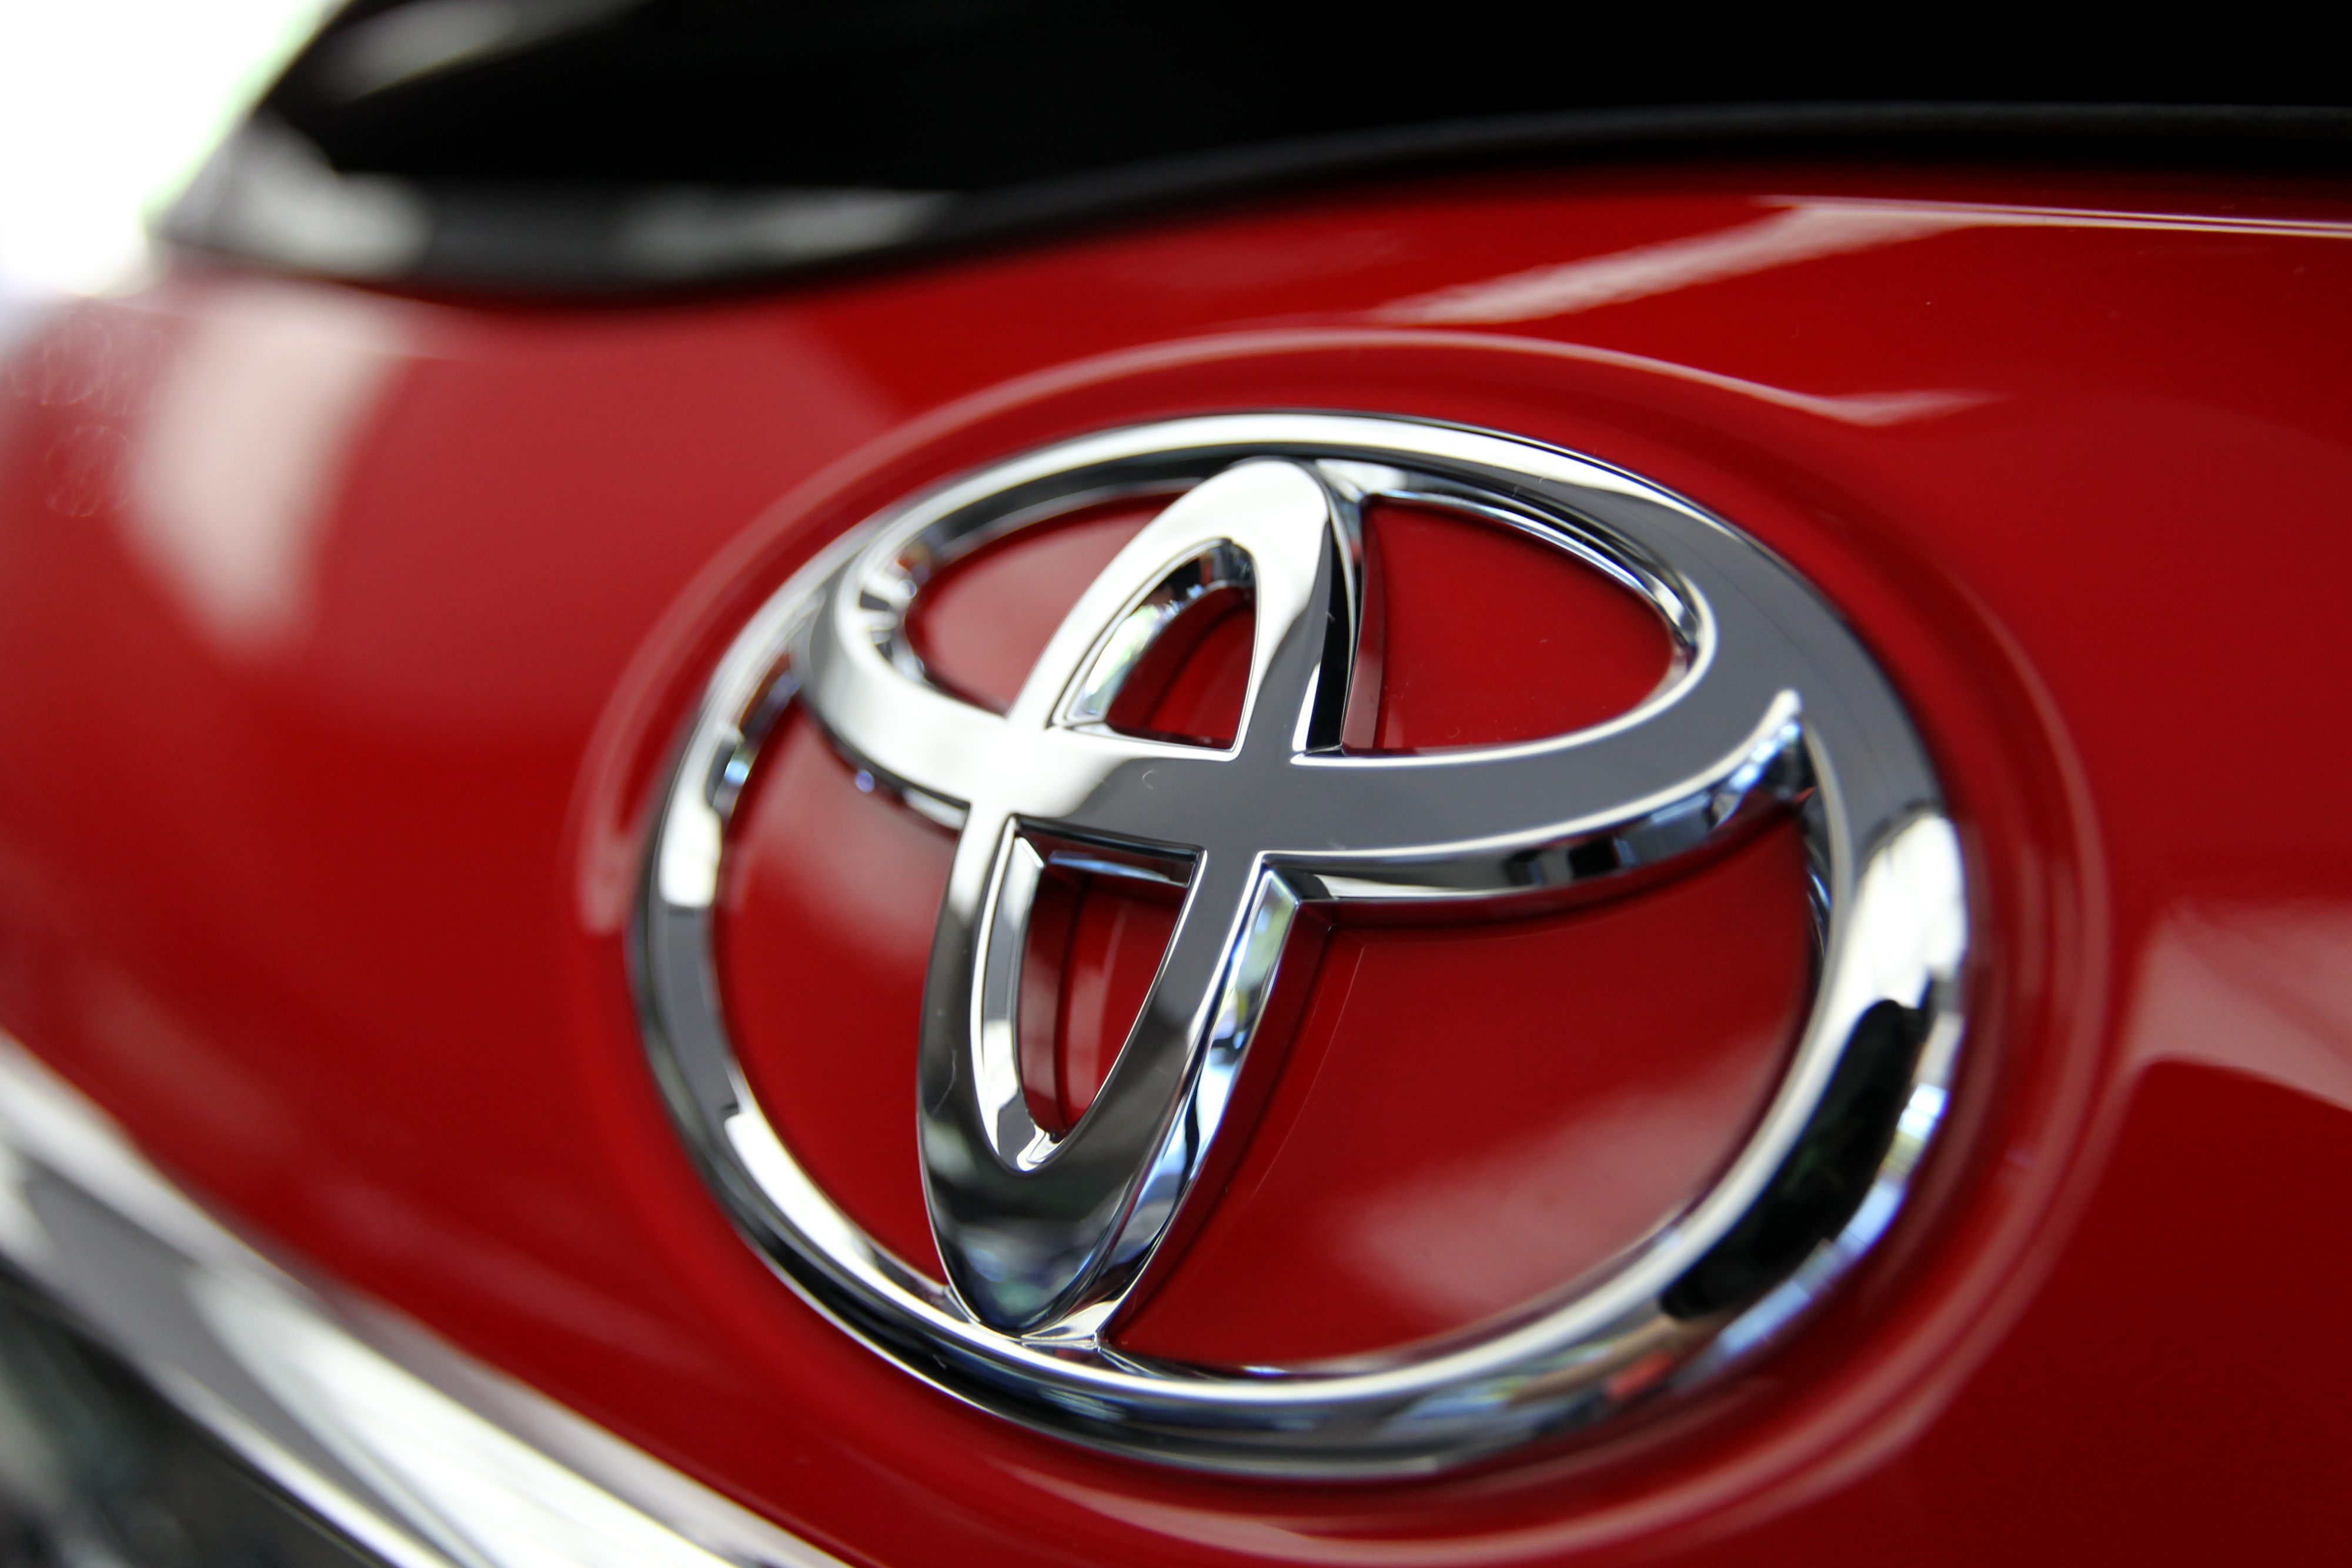 The Toyota Motor Corp. logo is displayed on an automobile at the company's headquarters in Tokyo, Japan, on Aug. 5, 2014.